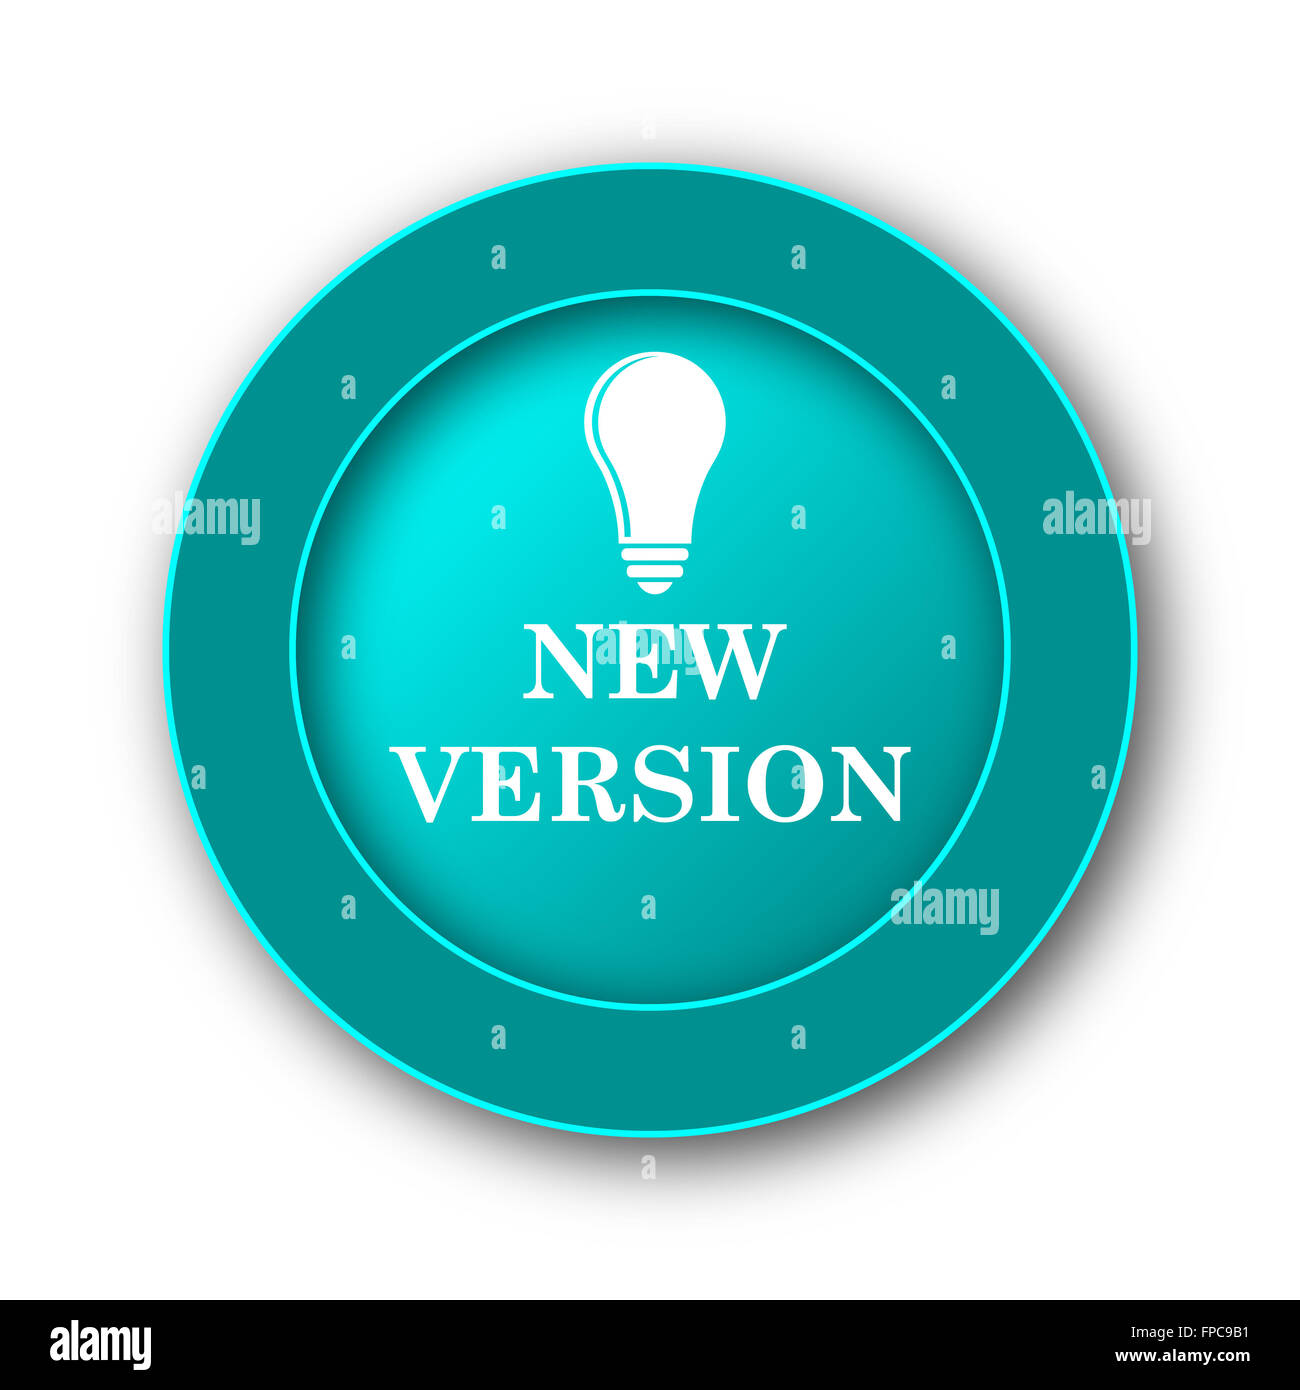 New version icon. Internet button on white background - Stock Image